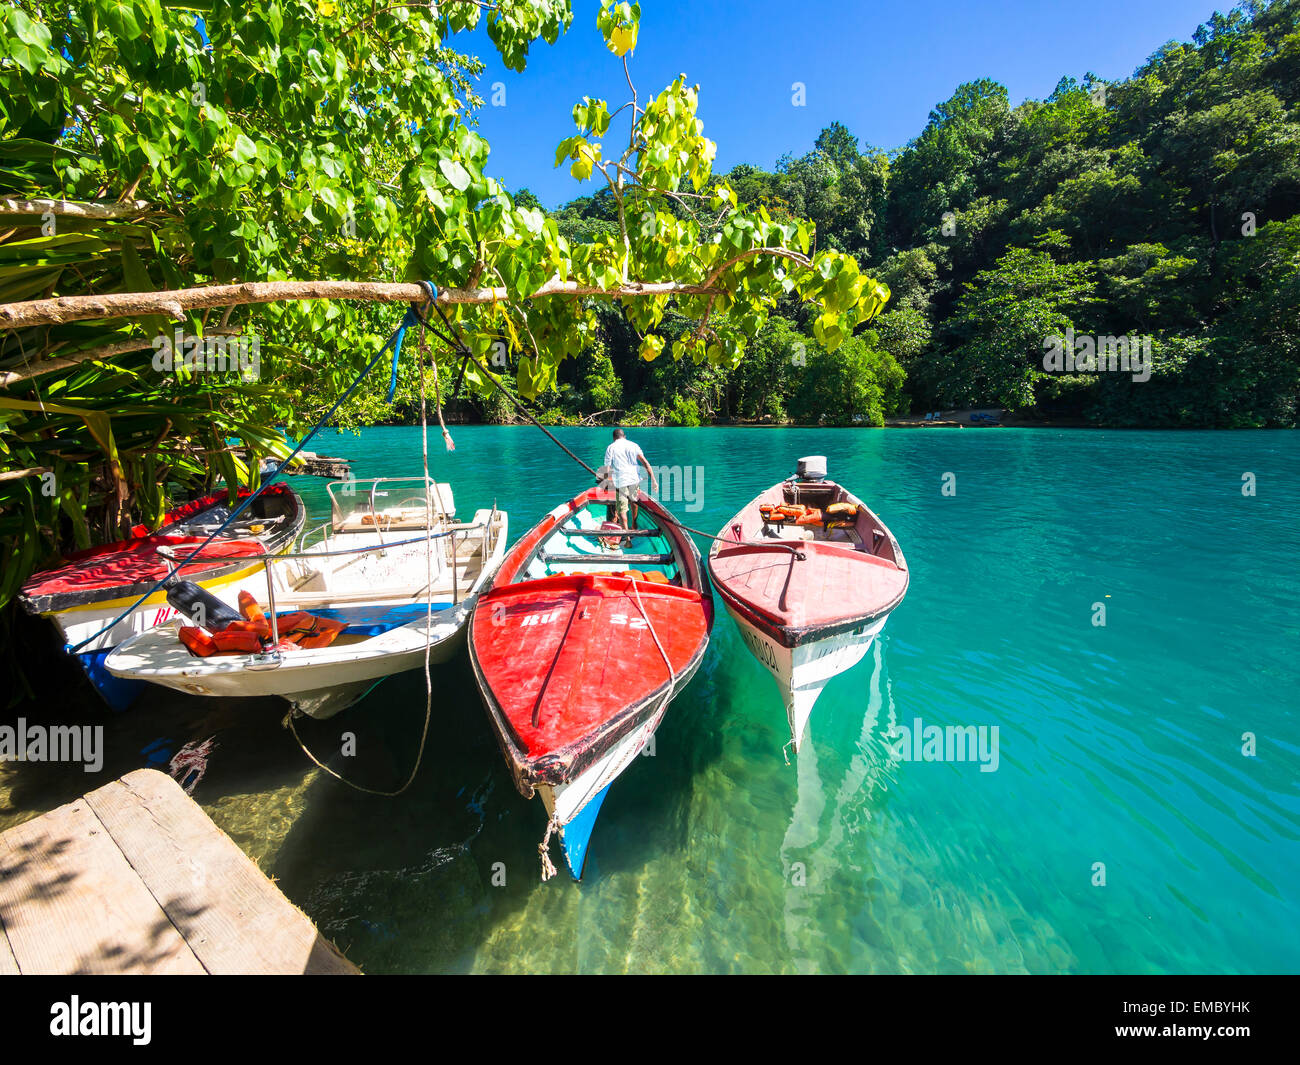 Jamaica, Port Antonio, boats in the blue lagoon Stock Photo